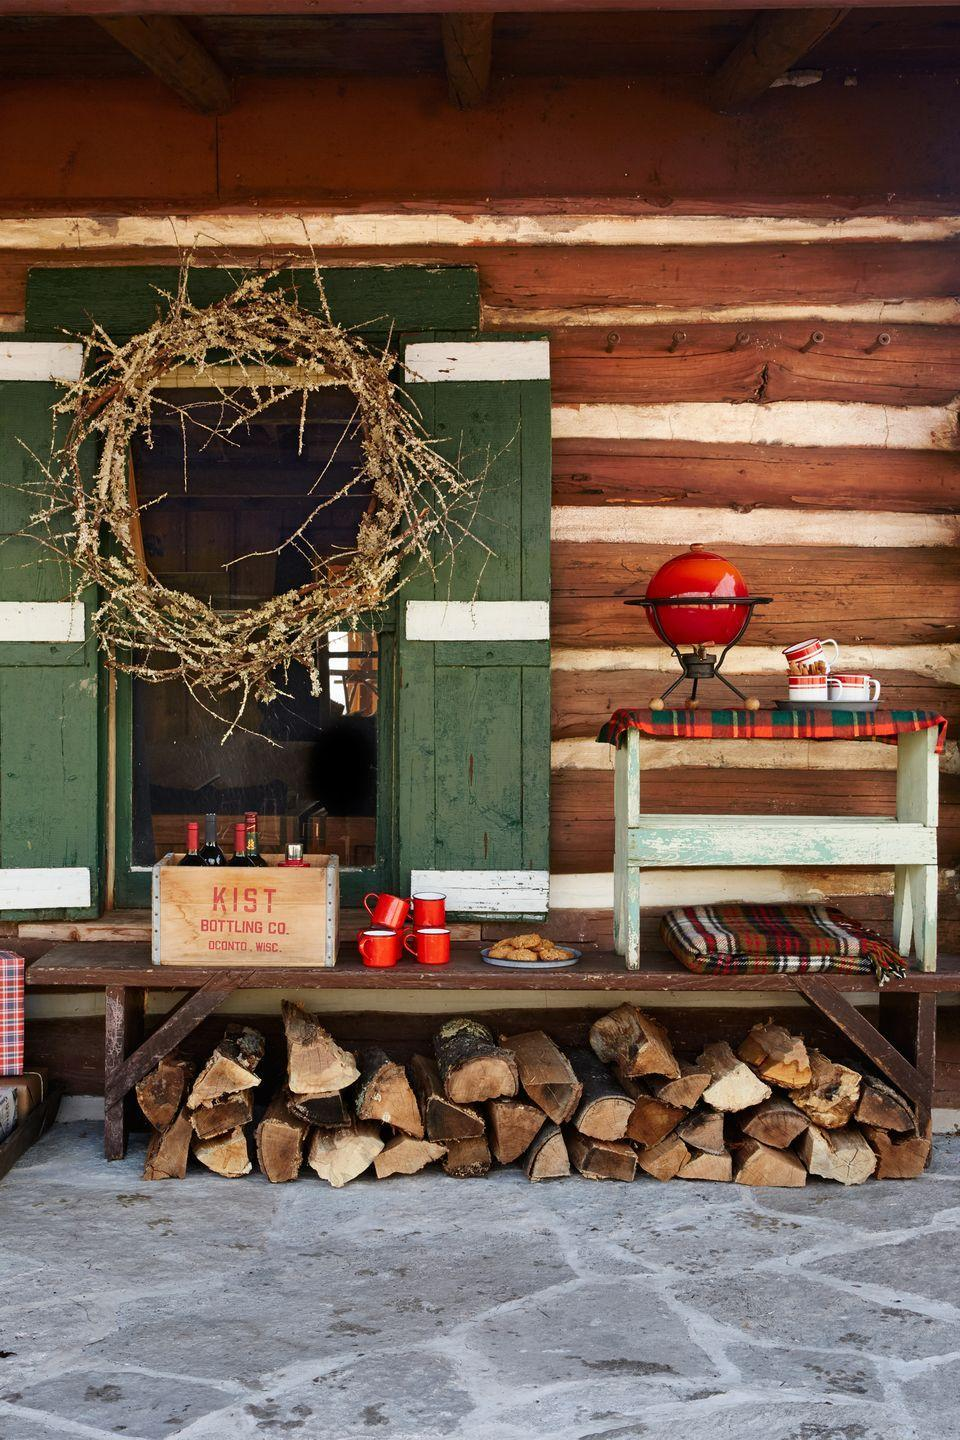 """<p>Made of moss- and lichen-covered twigs, the wreath sets an unfussy tone for visitors. Mulled wine, served from a 1960s Danish muller <em>(right) </em>adds to the warm welcome of this <span>cozy cabin</span>.</p><p><a class=""""link rapid-noclick-resp"""" href=""""https://www.amazon.com/s/ref=nb_sb_noss_1?url=search-alias%3Dgarden&field-keywords=grapevine+wreath&rh=n%3A1055398%2Ck%3Agrapevine+wreath&tag=syn-yahoo-20&ascsubtag=%5Bartid%7C10050.g.1247%5Bsrc%7Cyahoo-us"""" rel=""""nofollow noopener"""" target=""""_blank"""" data-ylk=""""slk:SHOP GRAPEVINE WREATHS"""">SHOP GRAPEVINE WREATHS</a><br></p>"""